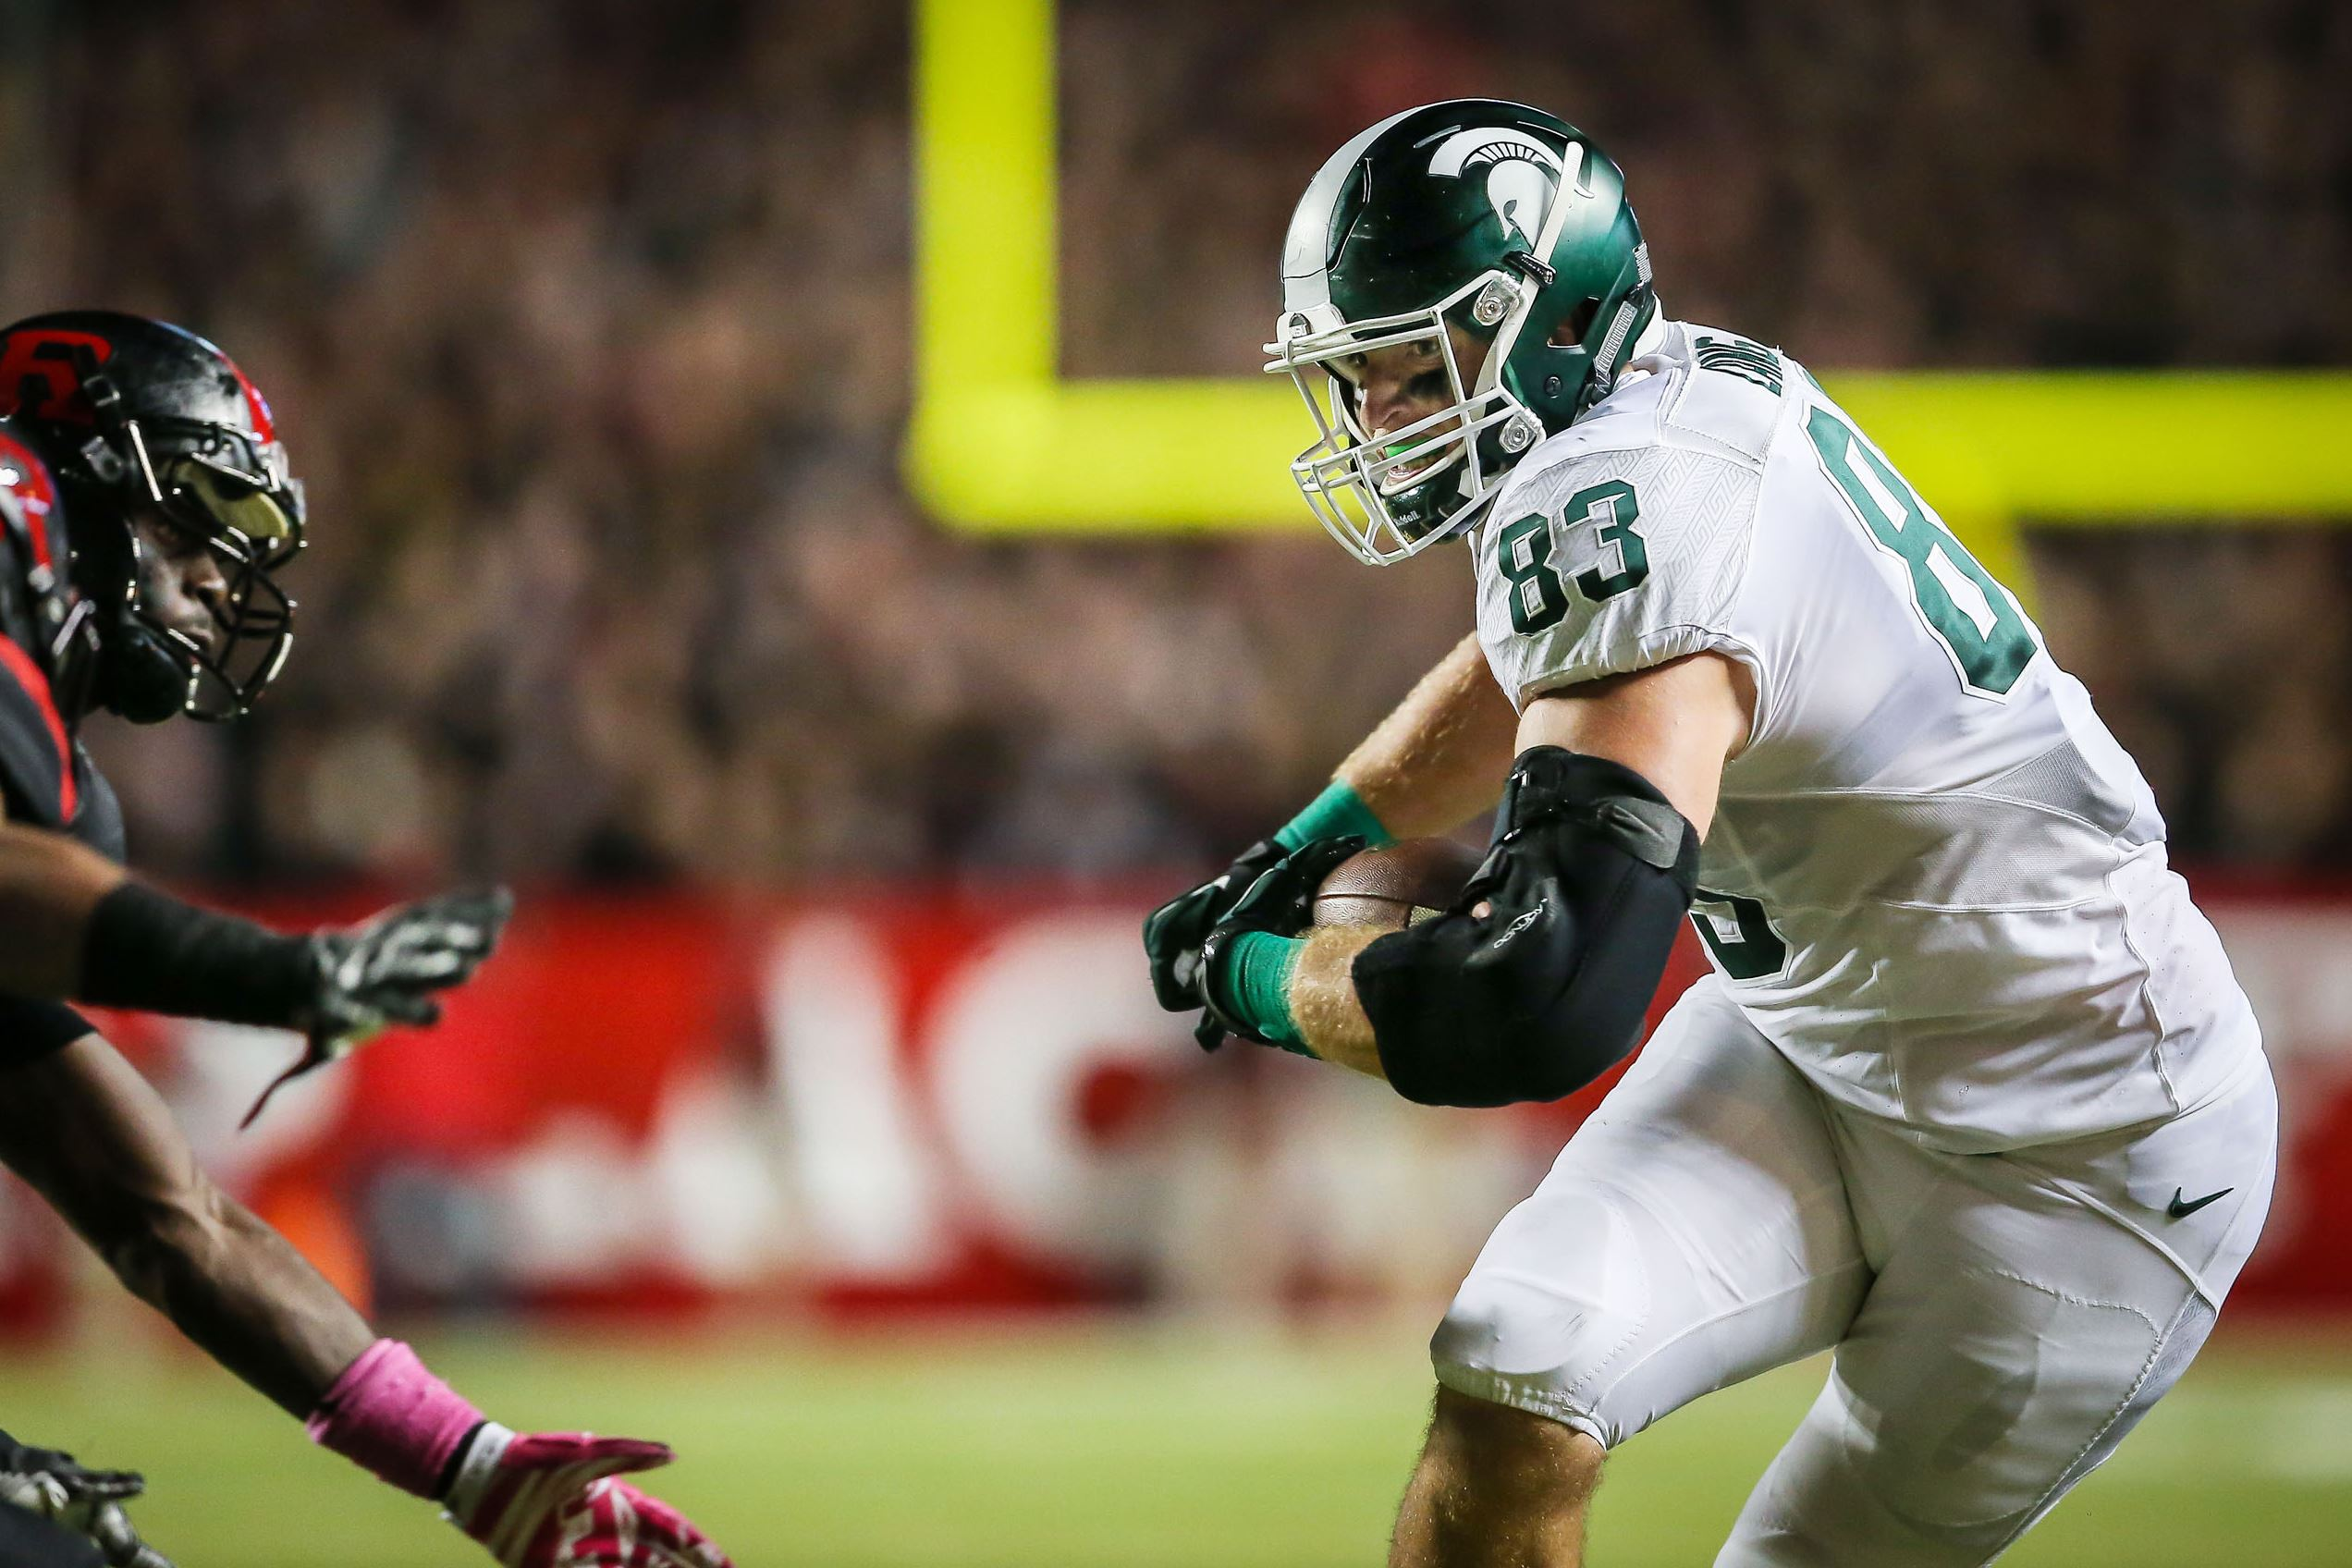 South Xtra: Mt. Lebanon grad helps Michigan State to ...